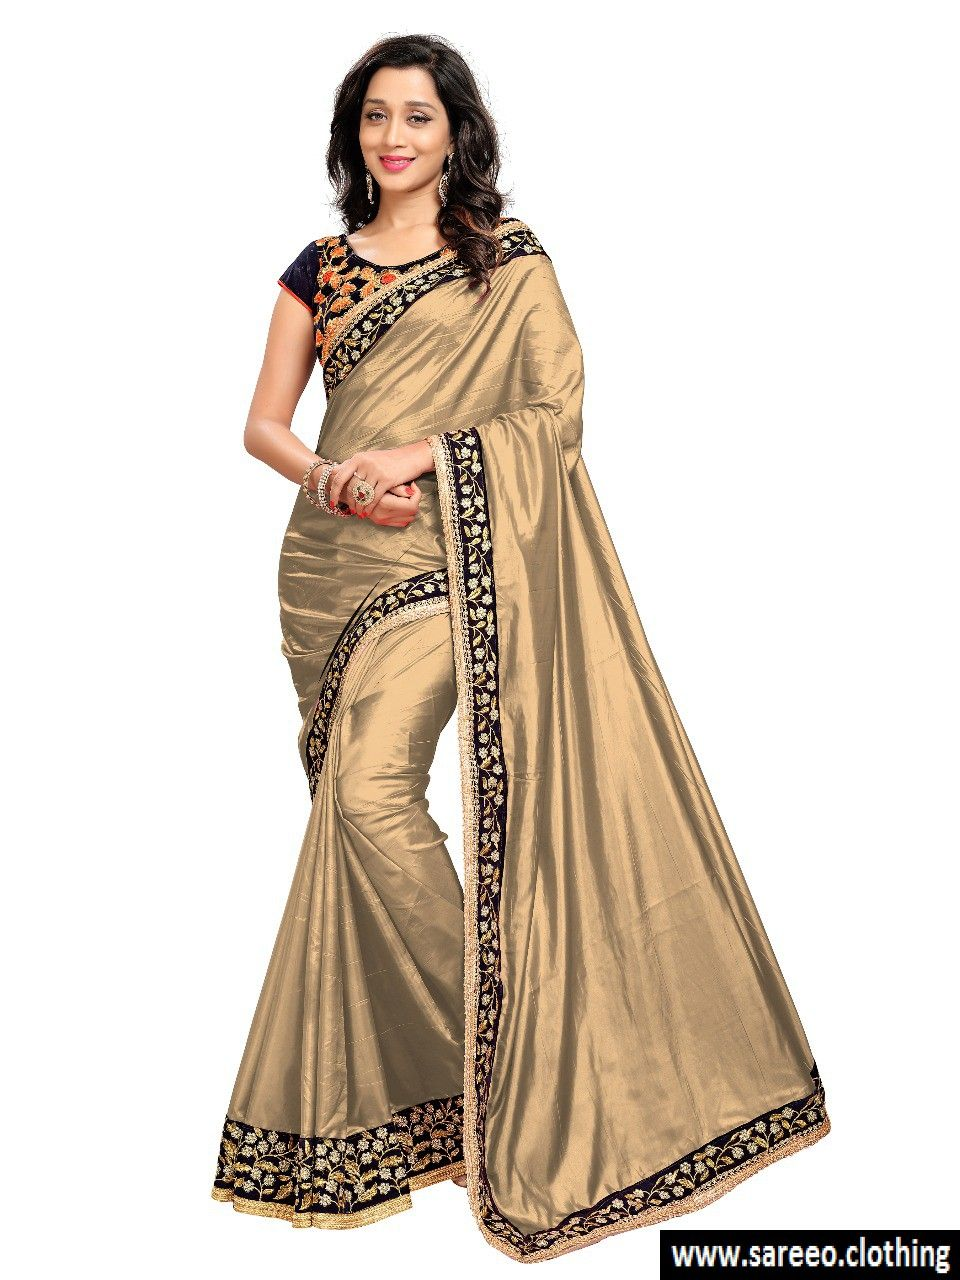 5b6d2c9e59b97  ♀ ♀Exclusive Cream Shining Paper Silk Embroidered Dazzling Saree♀ ♀ . . .  Want Discount  Comment Here and Get Personal Discount Code Worldwide Free  ...